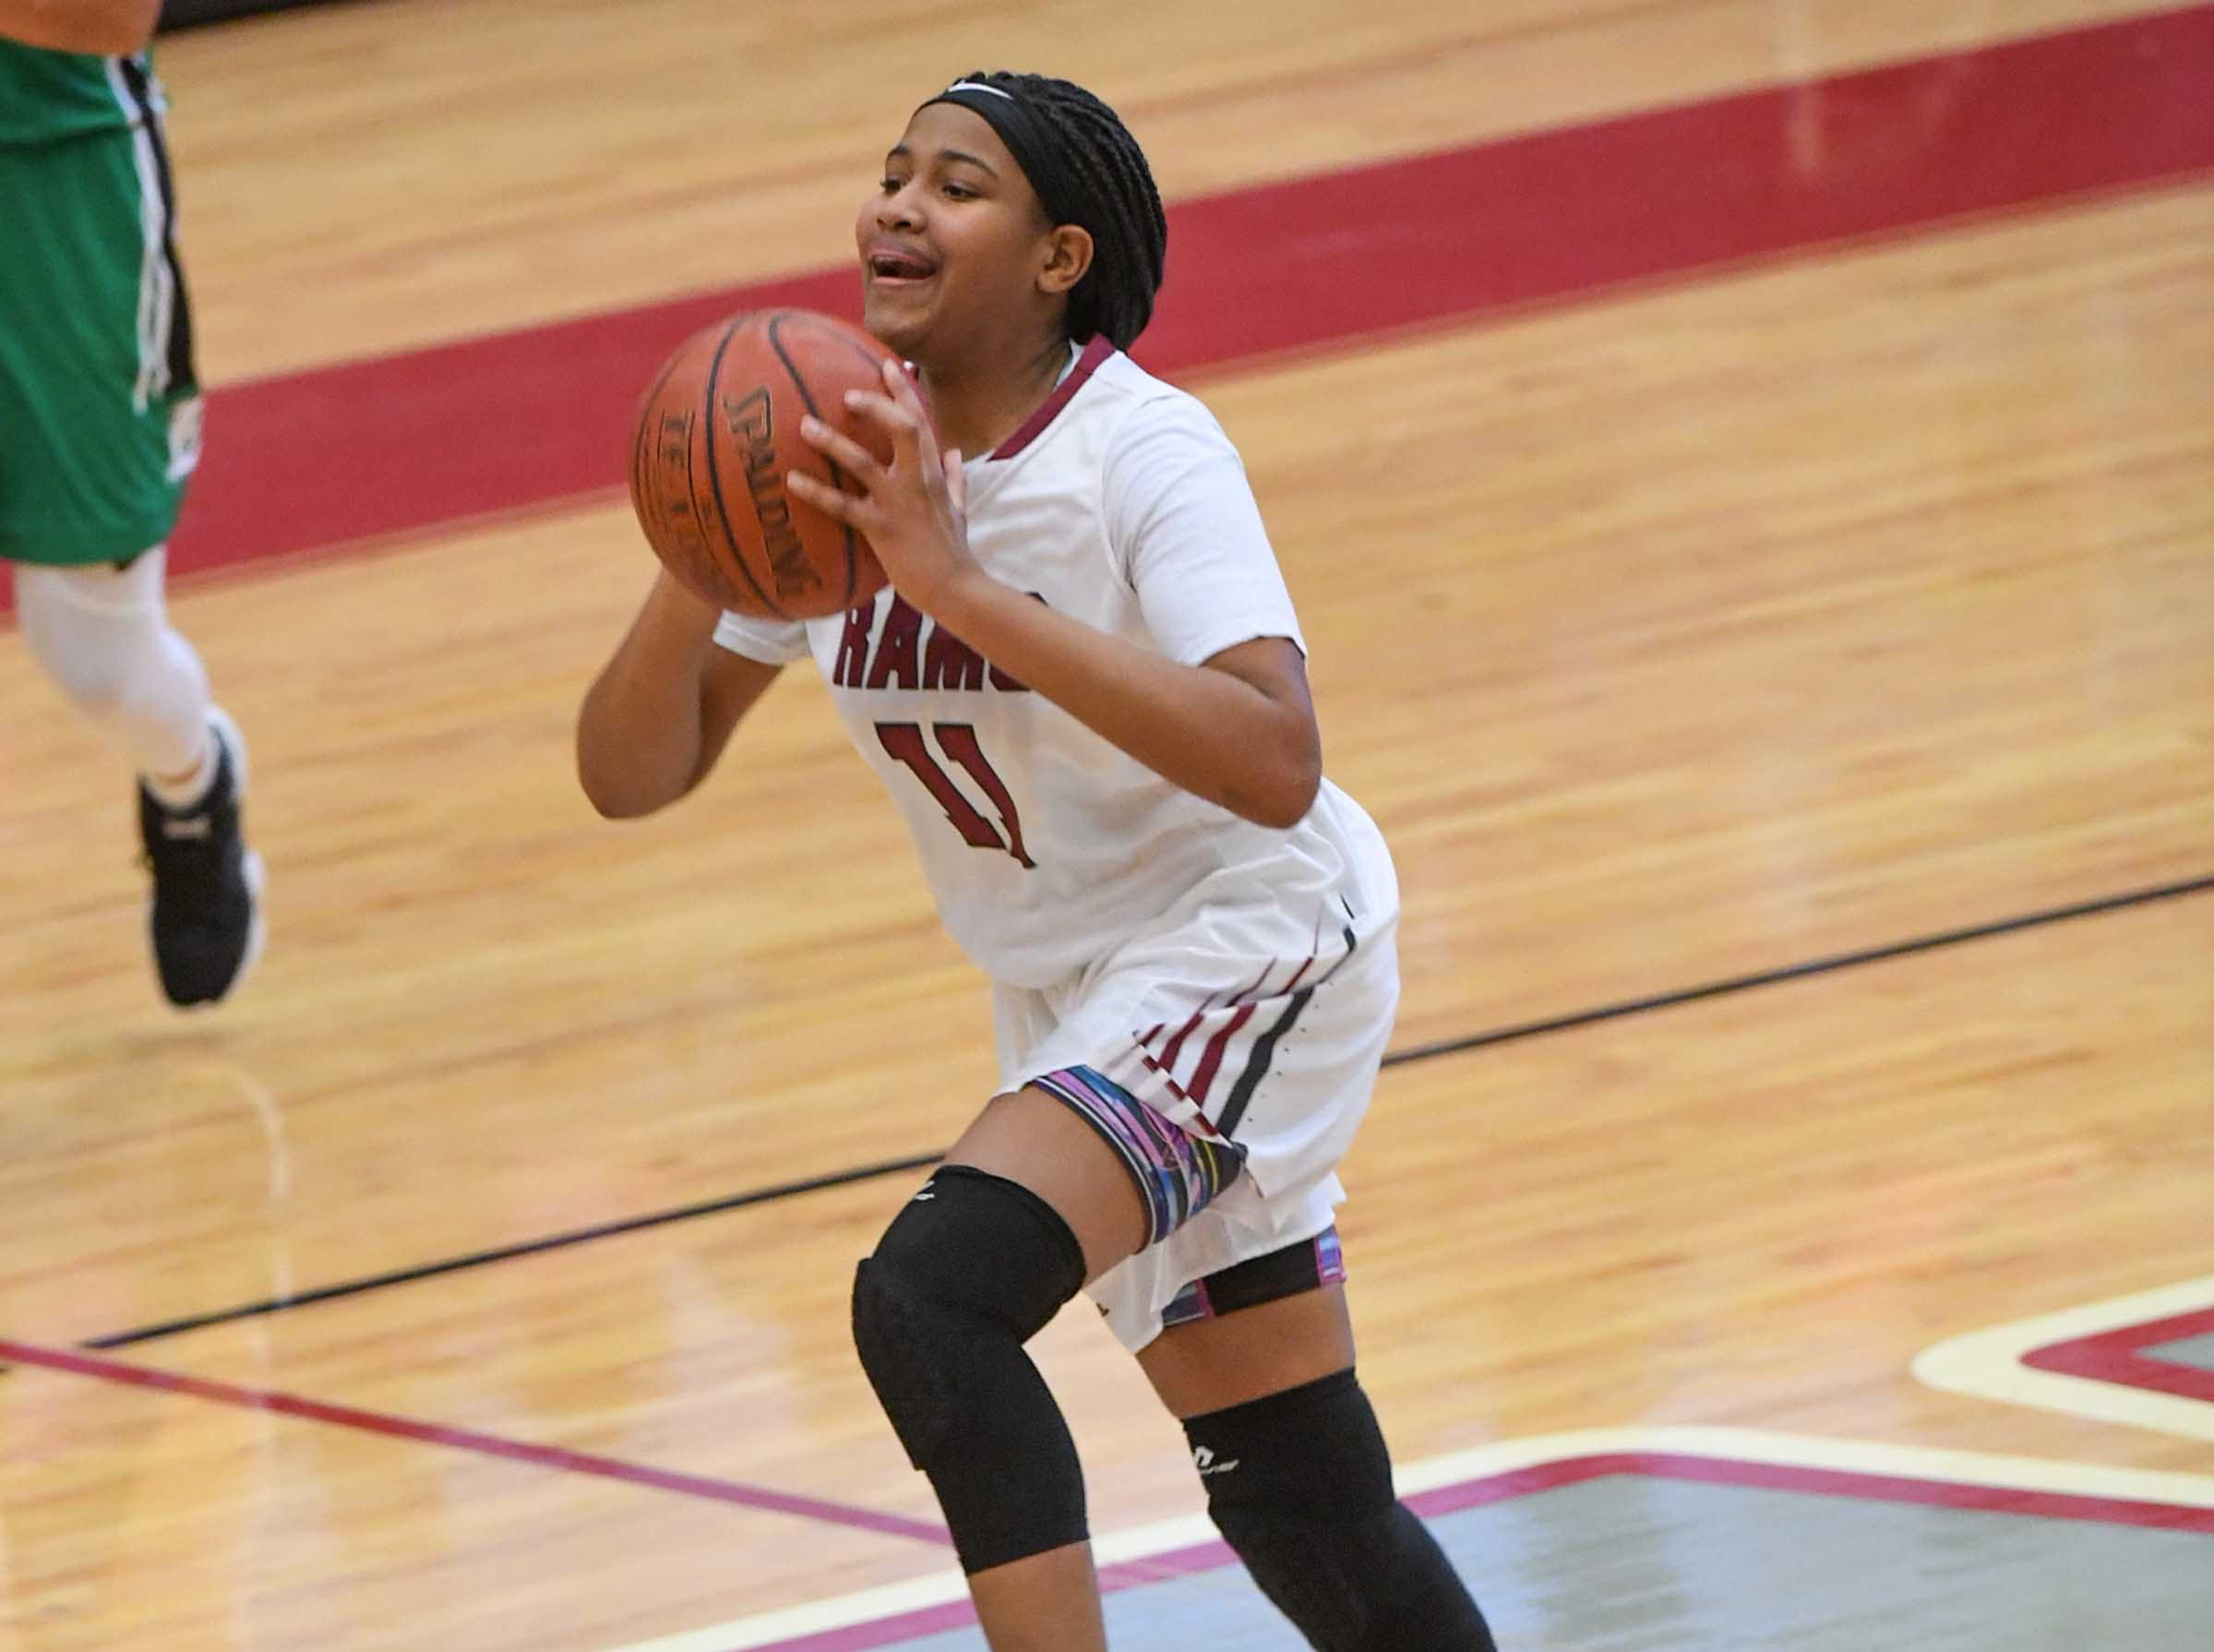 Westside freshman Destiny Middleton(11) shoots at the end of the second quarter at Westside High School in Anderson on Friday. She made the shot, but referees didn't count it with time running out before the shot.